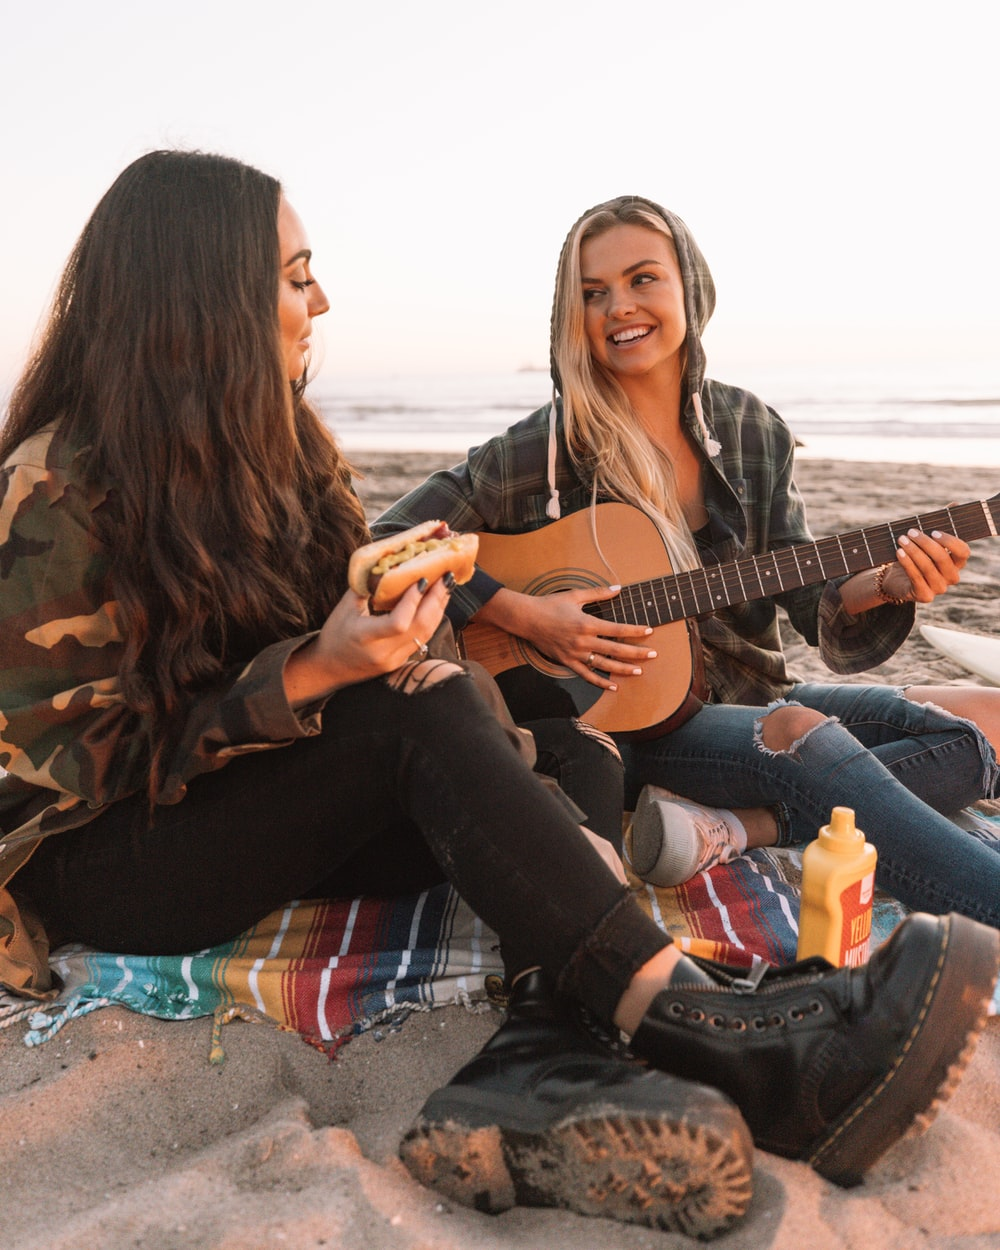 2 women sitting on the ground playing acoustic guitar